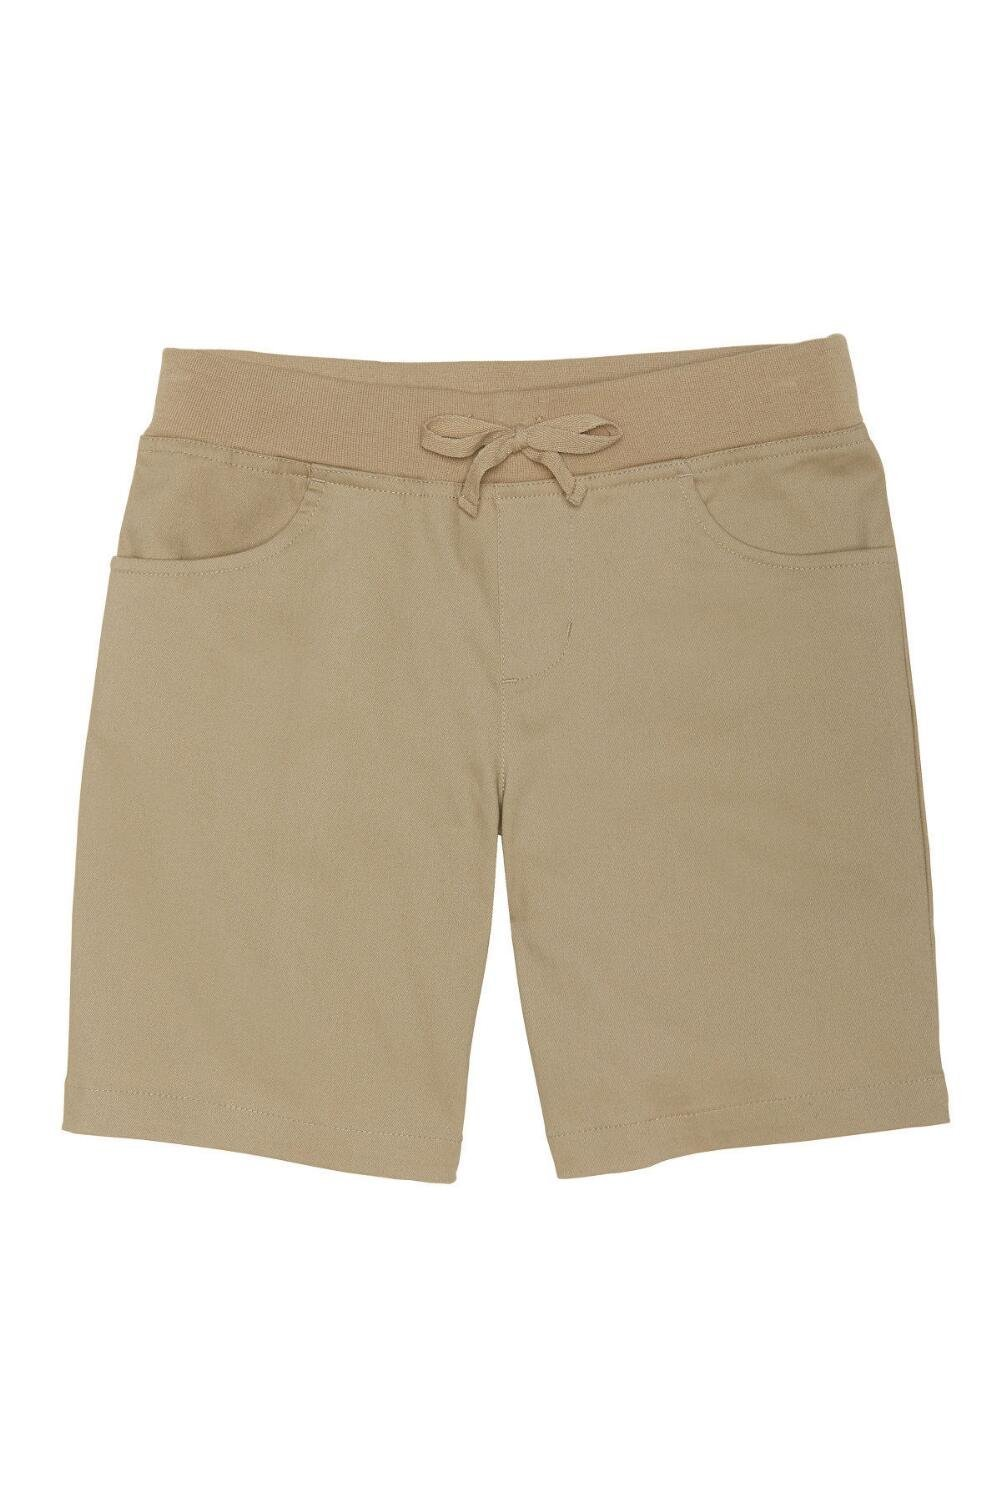 French Toast Little Girls' Stretch Pull-on Tie Front Short, Khaki, 6